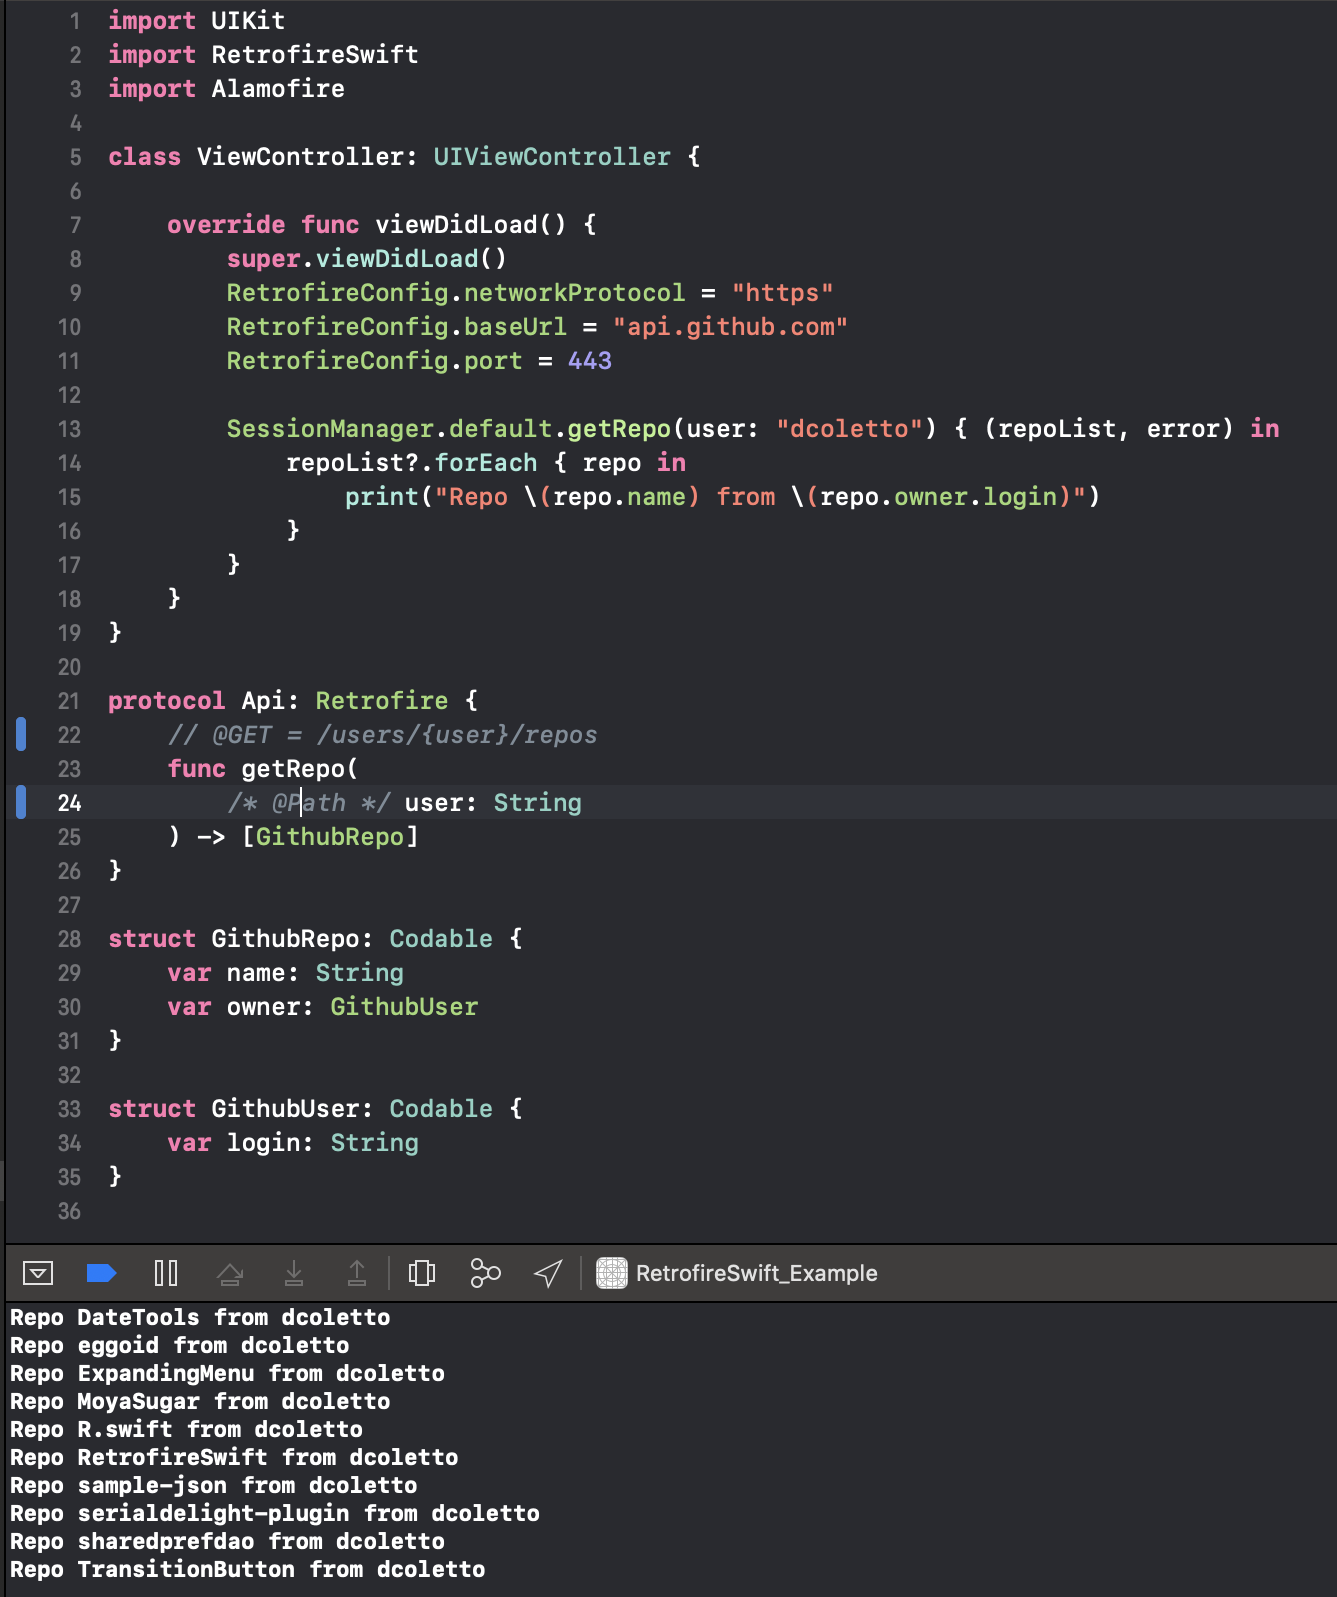 RetrofireSwift on CocoaPods org